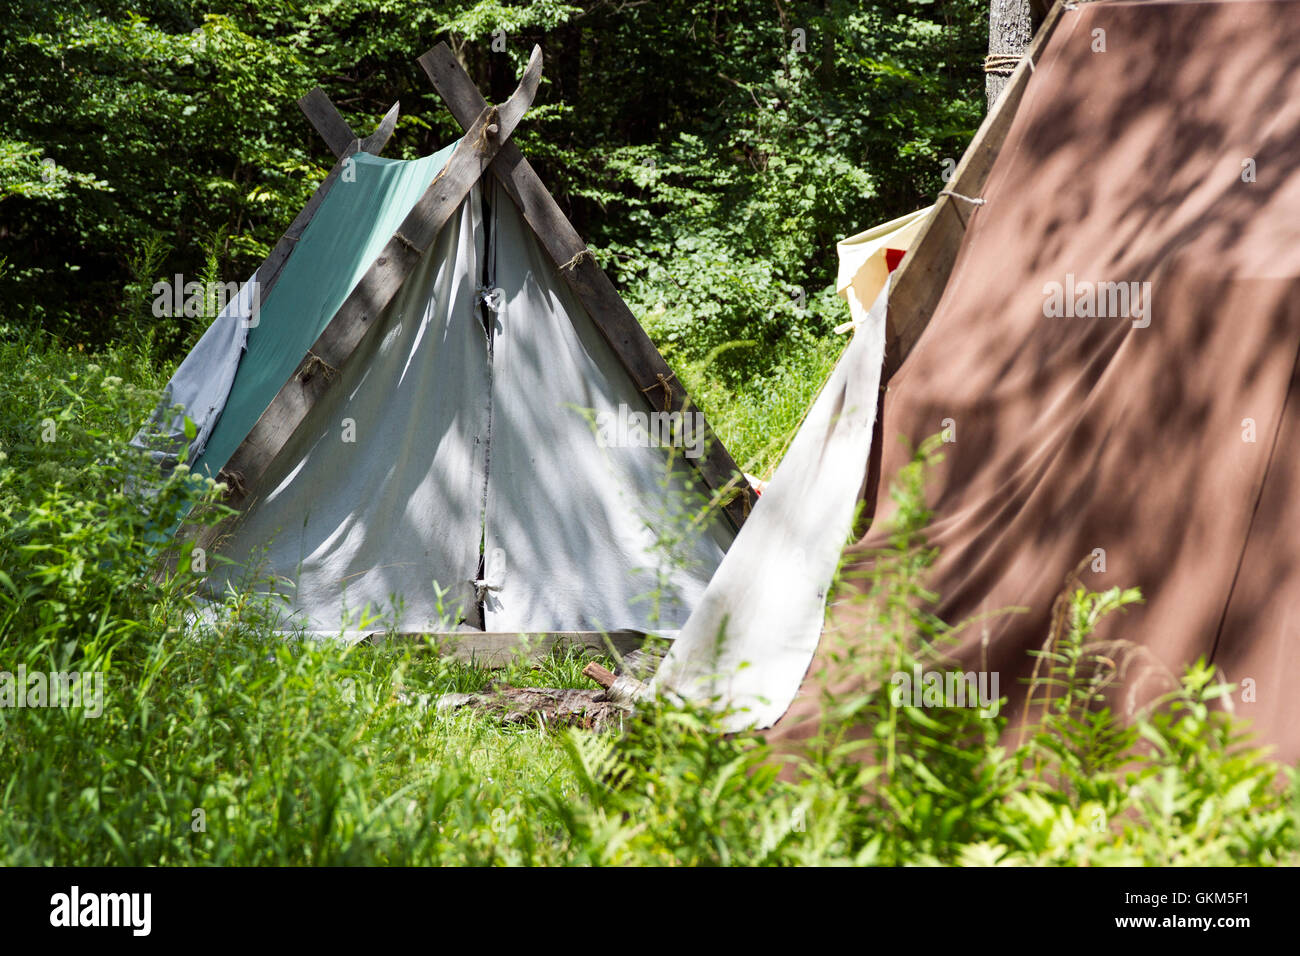 Old Fashion Tents - Stock Image